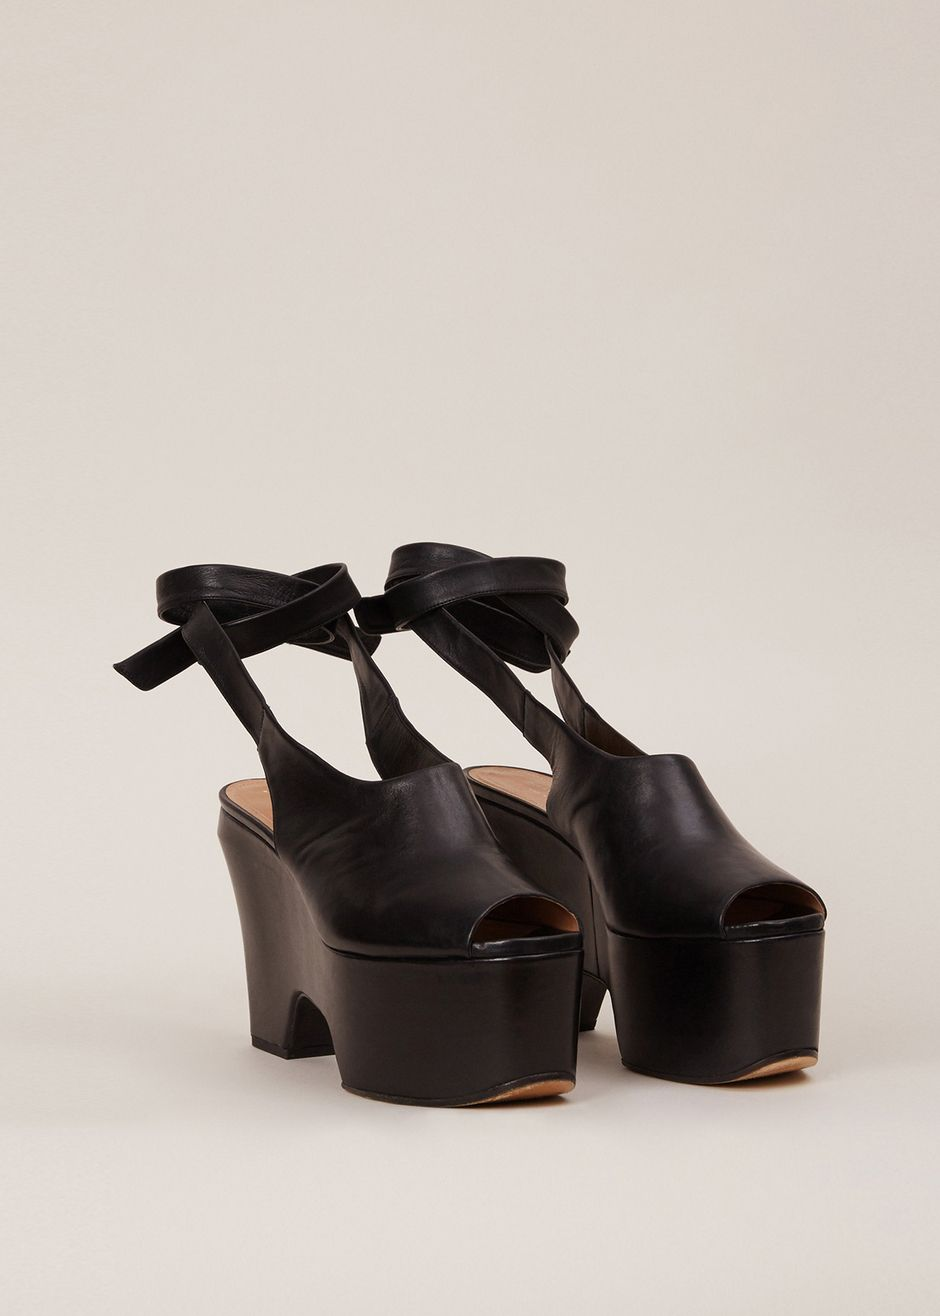 outlet store cheap online Dries Van Noten Peep-Toe Slingback Pumps buy cheap purchase clearance outlet store visit new online hPTmHC